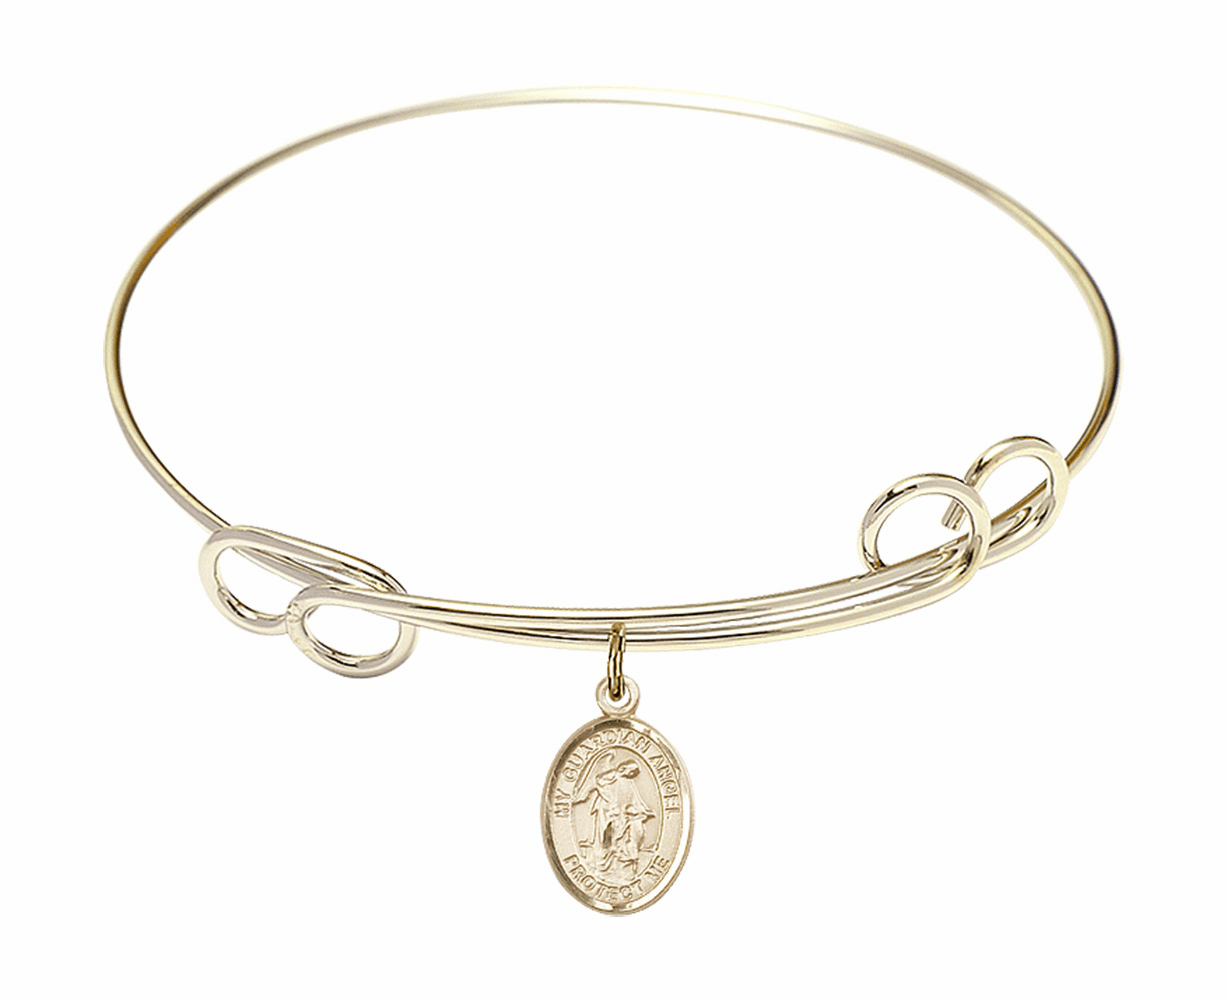 Loop Guardian Angel Bangle 14kt Gold-filled Charm Bracelet by Bliss